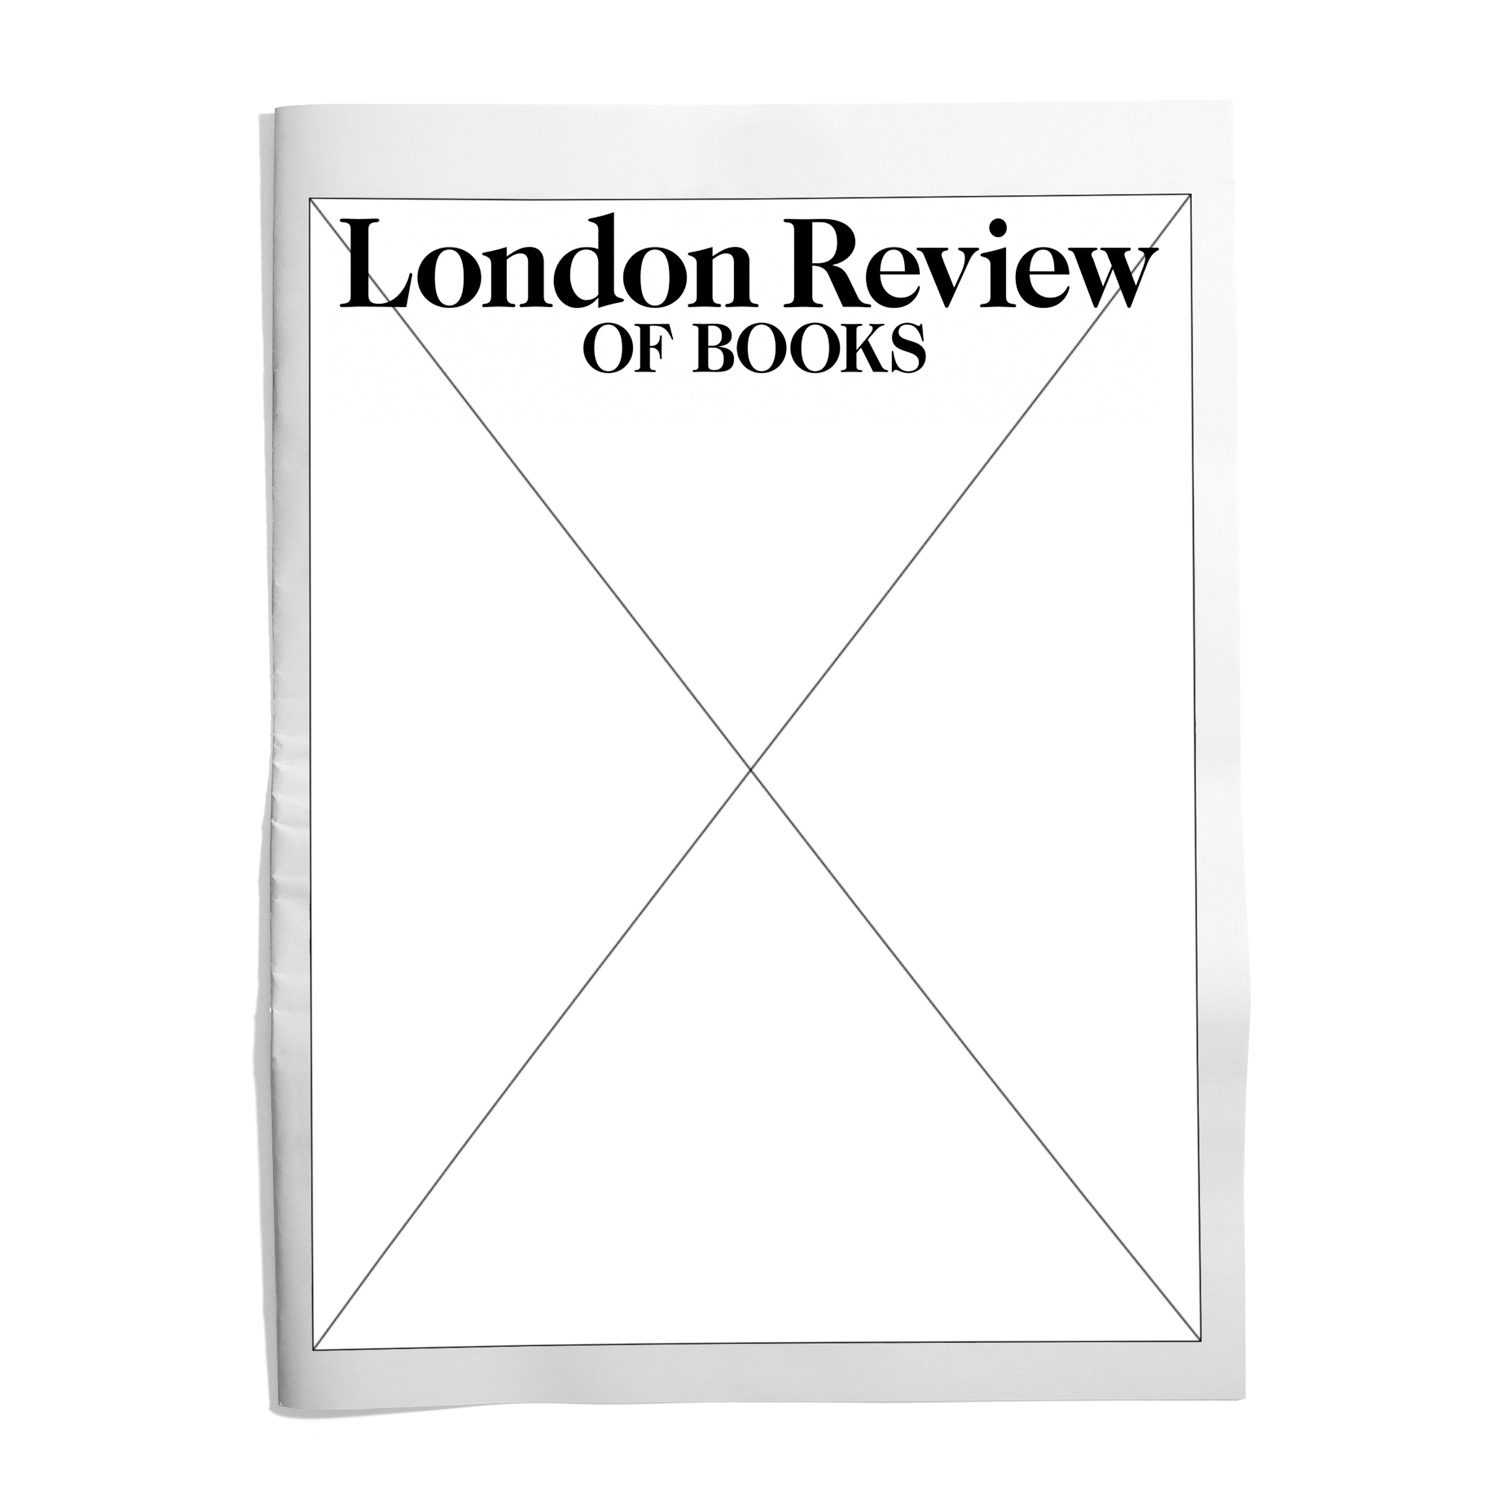 The London Review of Books 43/19 07.10.21